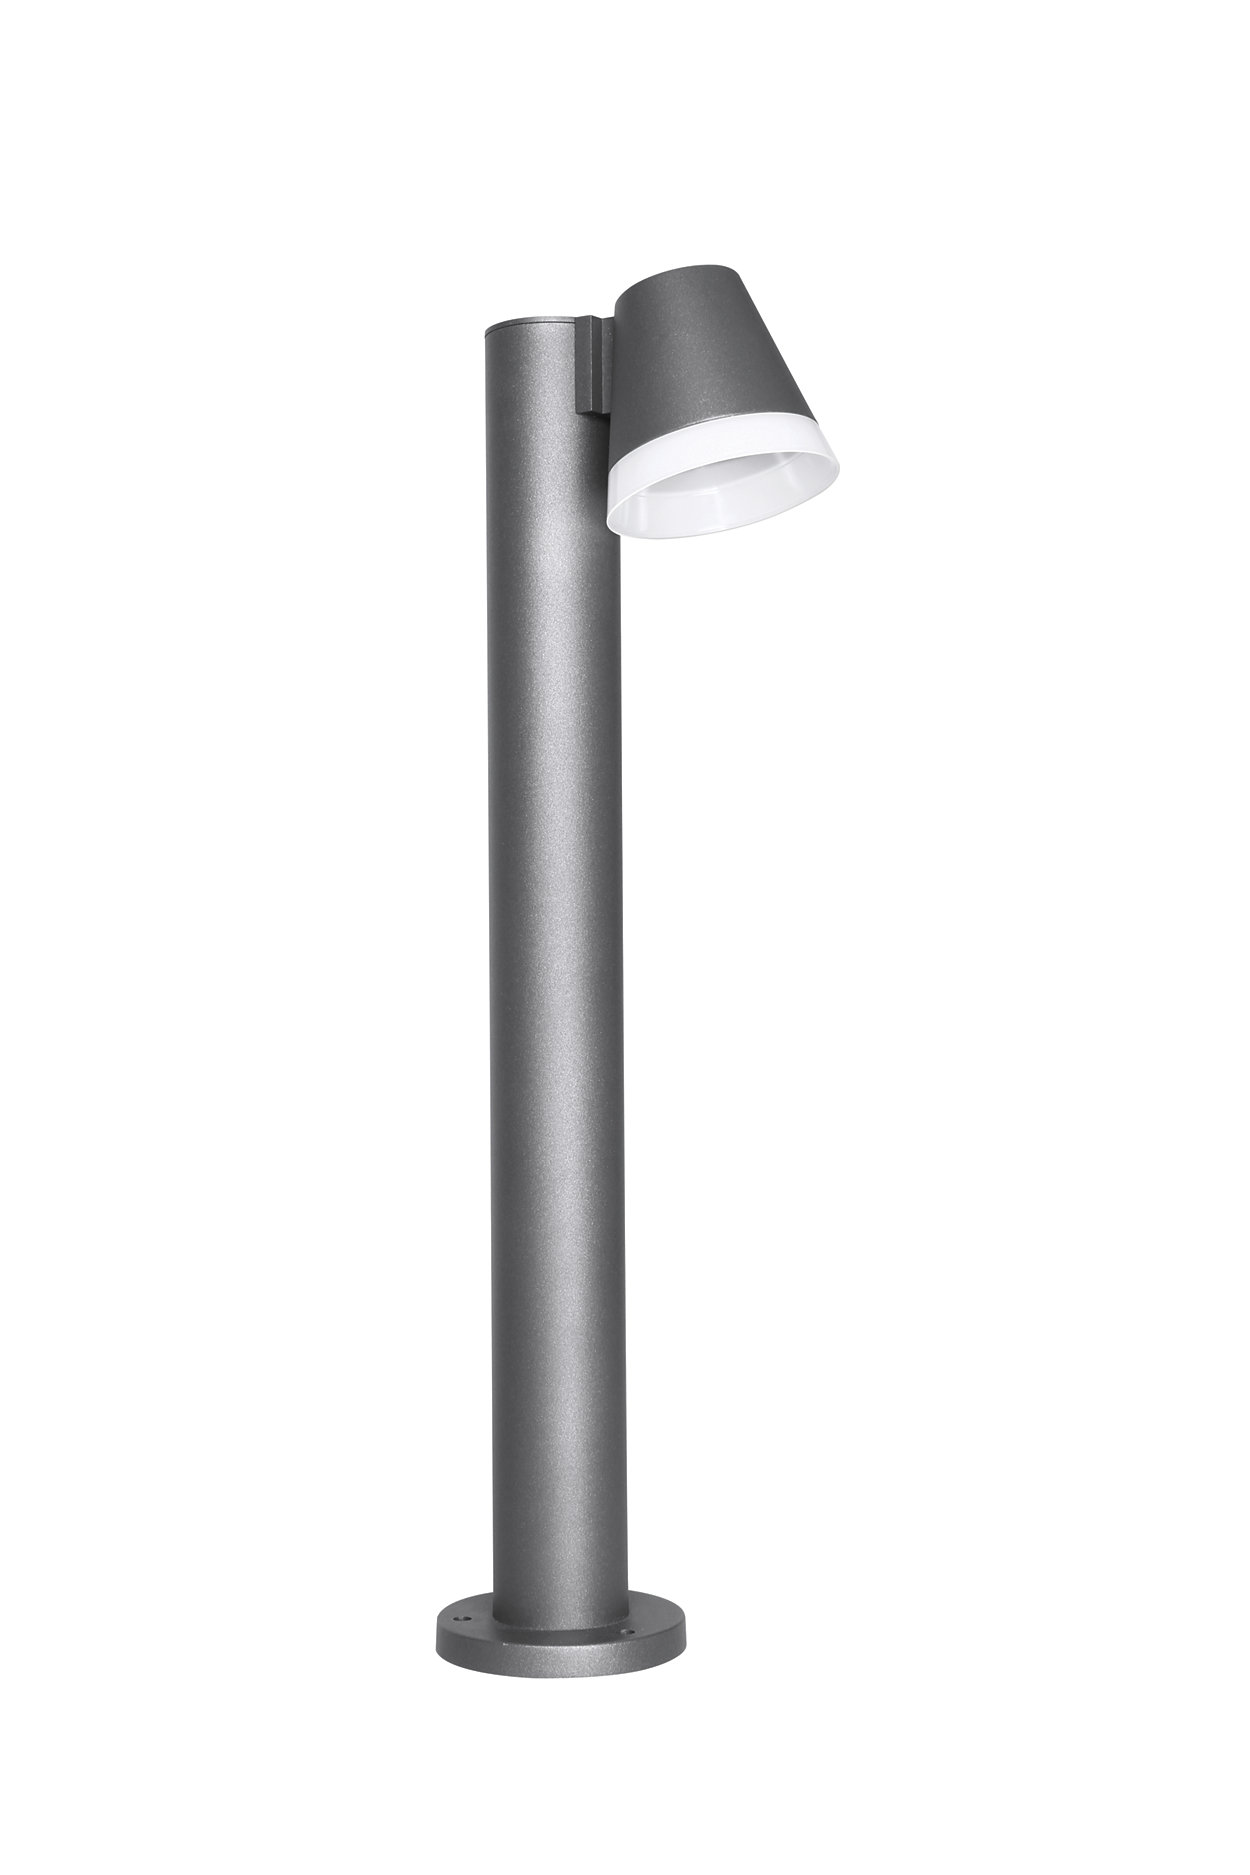 IP 65 fixtures ideal for gardens